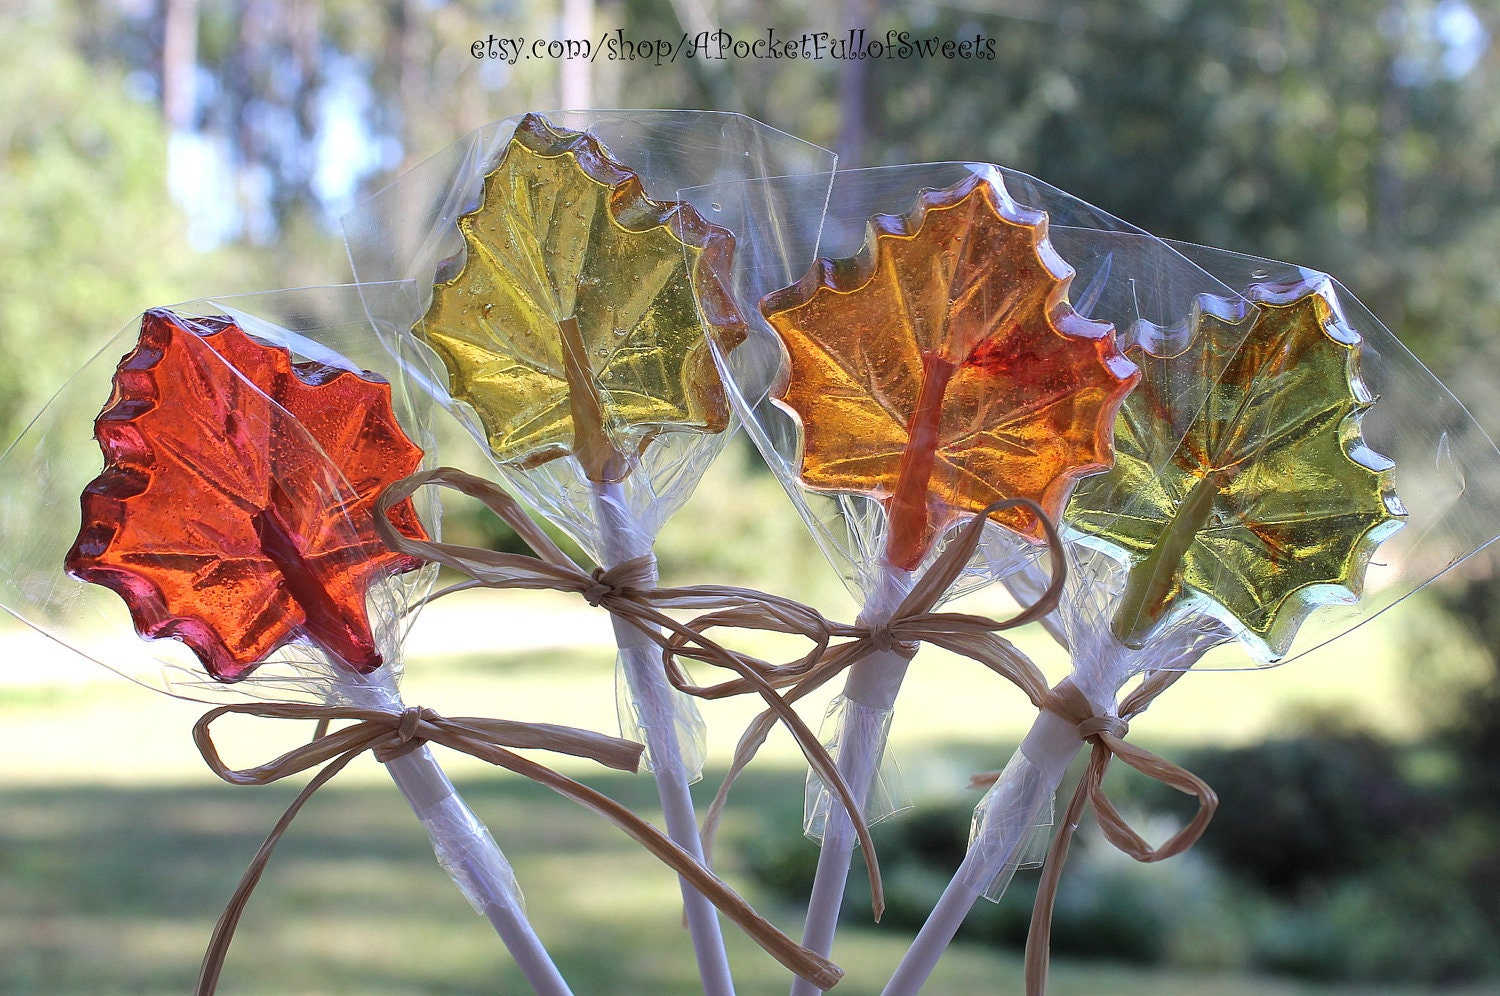 12 FALL LEAVES Hard Candy Barley Sugar Lollipops Suckers Party Favors Gift Maple Leaves Wedding Favors - APocketFullofSweets